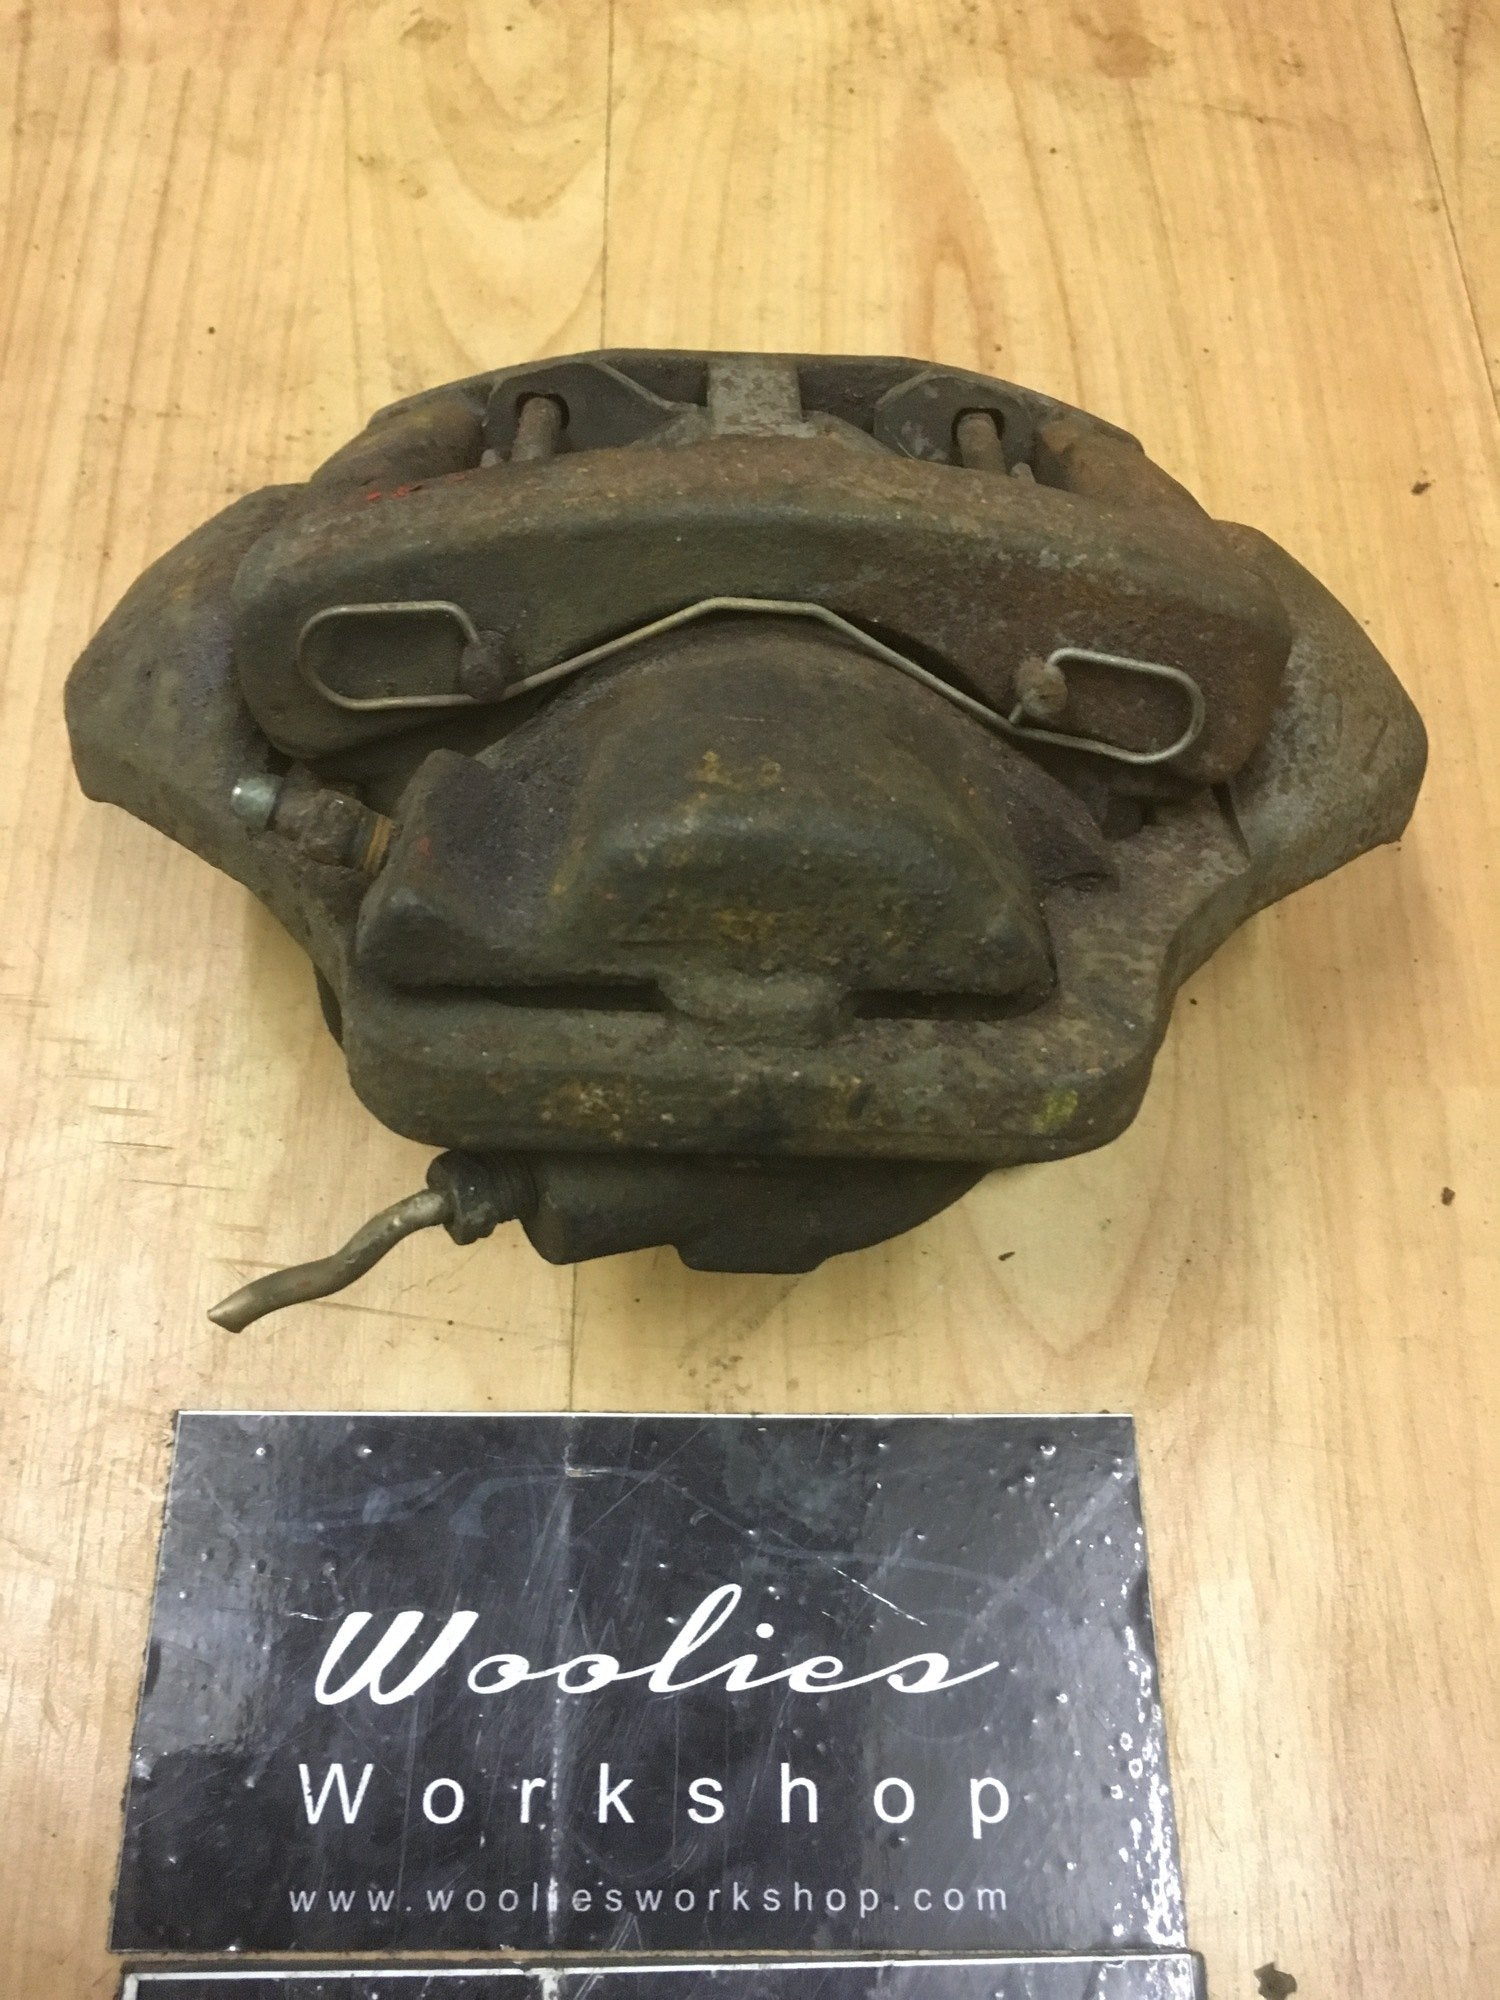 Porsche 924S 944 front left brake caliper 944 351 429 00 - Porsche Spares UK Ltd